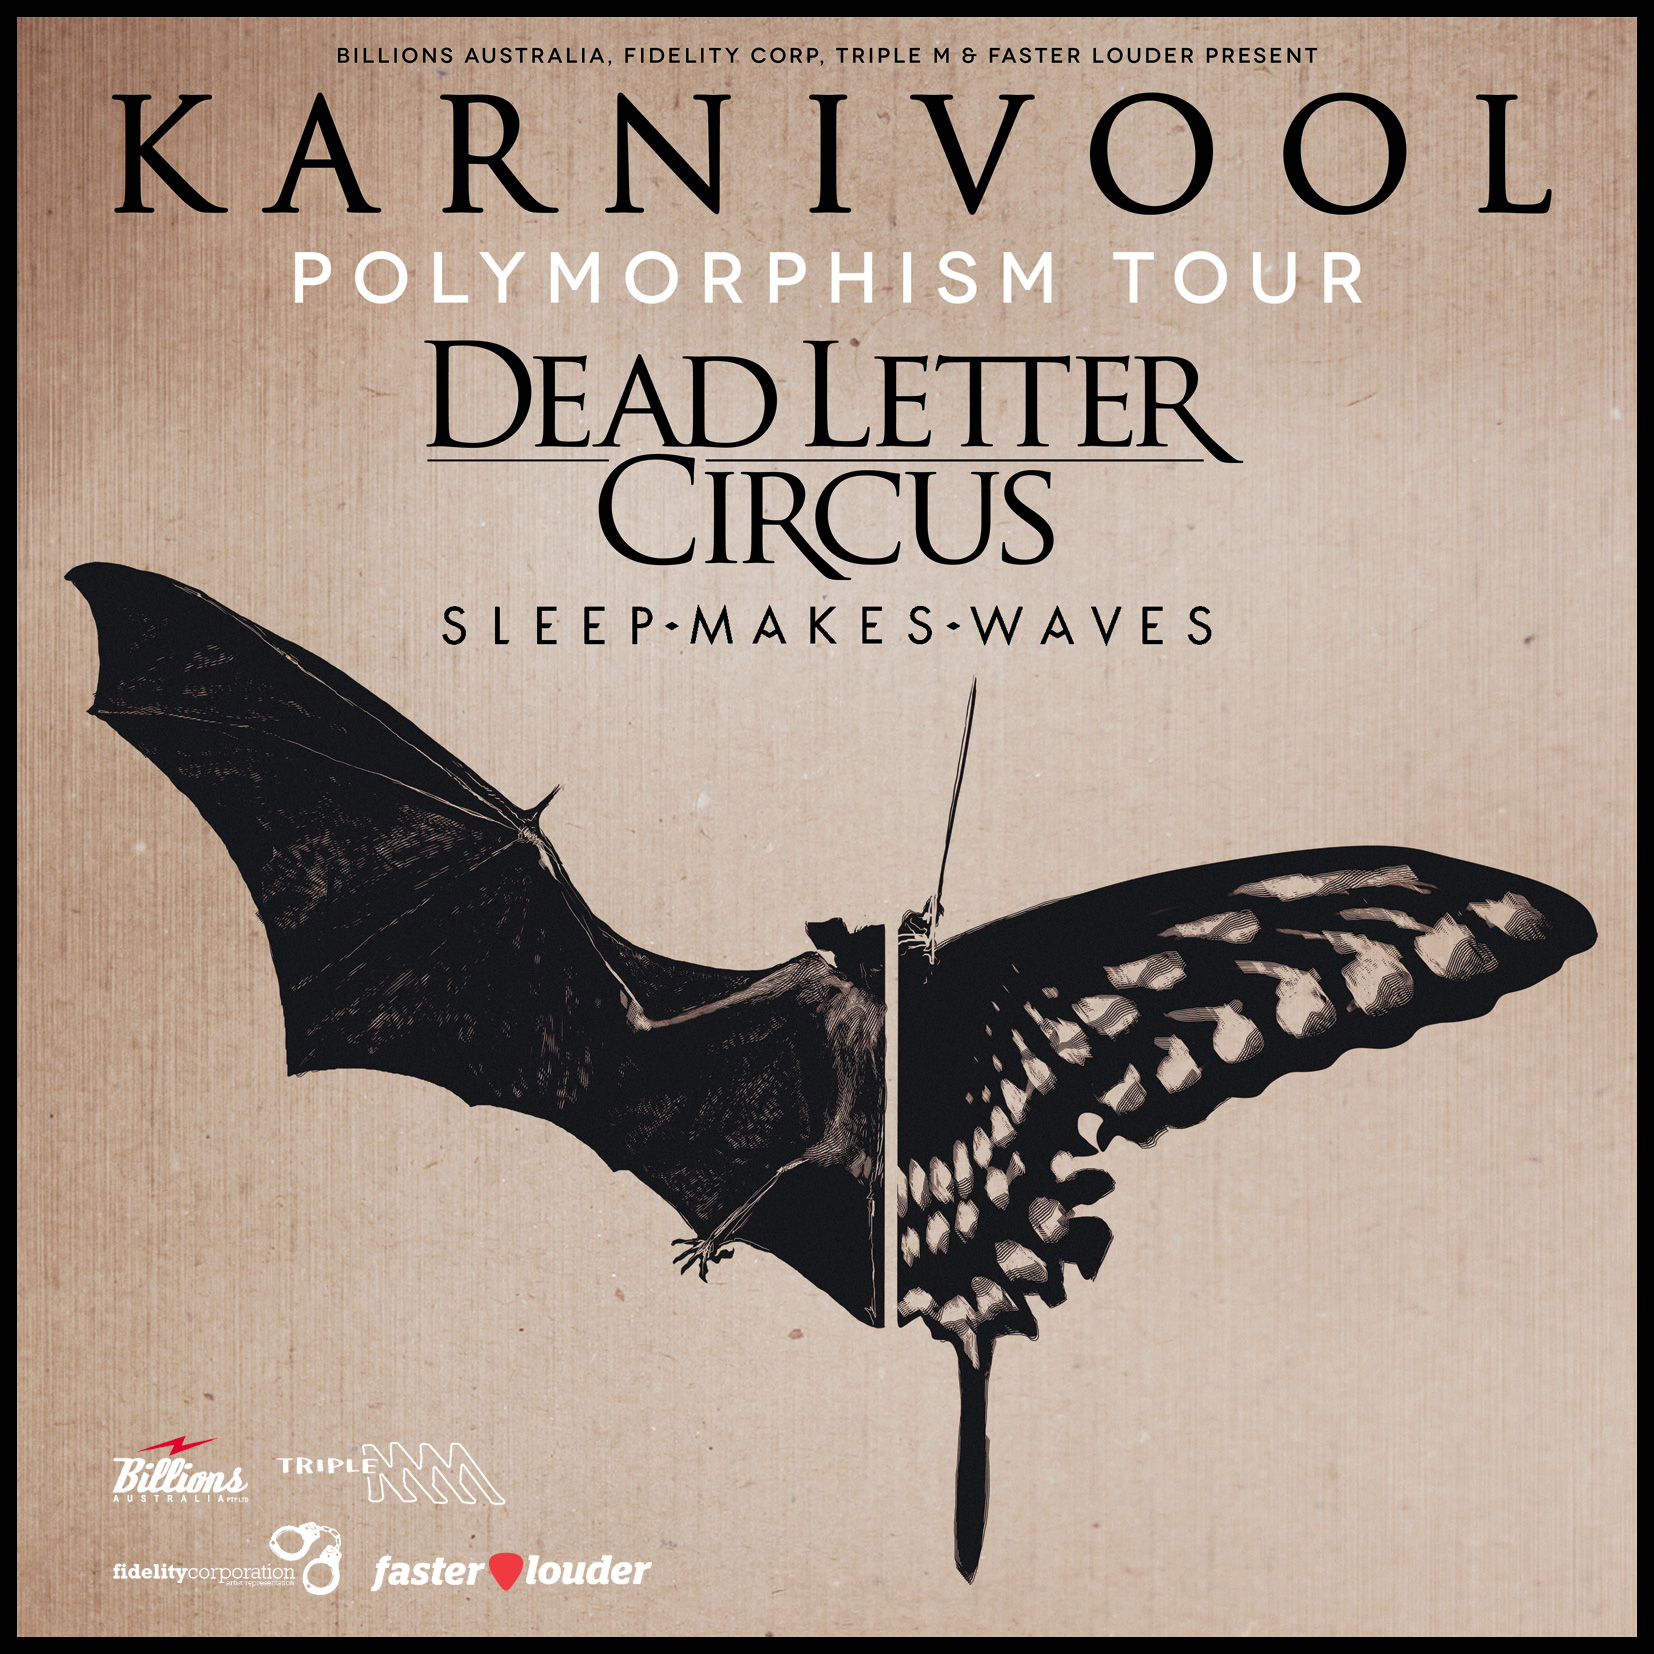 Polymorphism tour with Karnivool & Dead Letter Circus